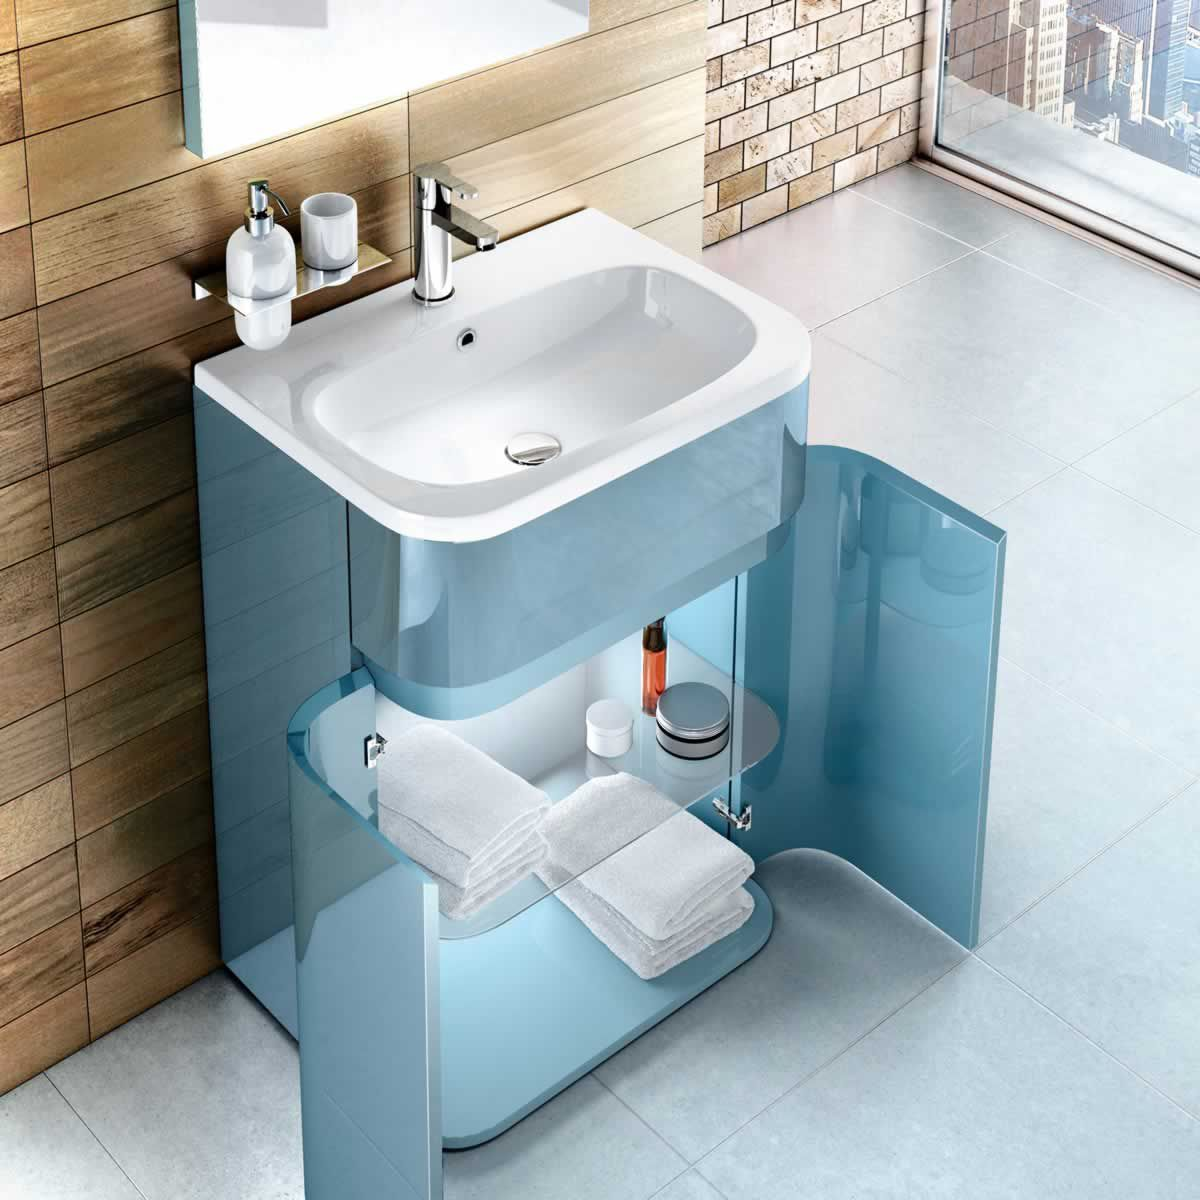 Britton D450 Gull Wing Cabinet with Basin | Gull, Aqua and Basin